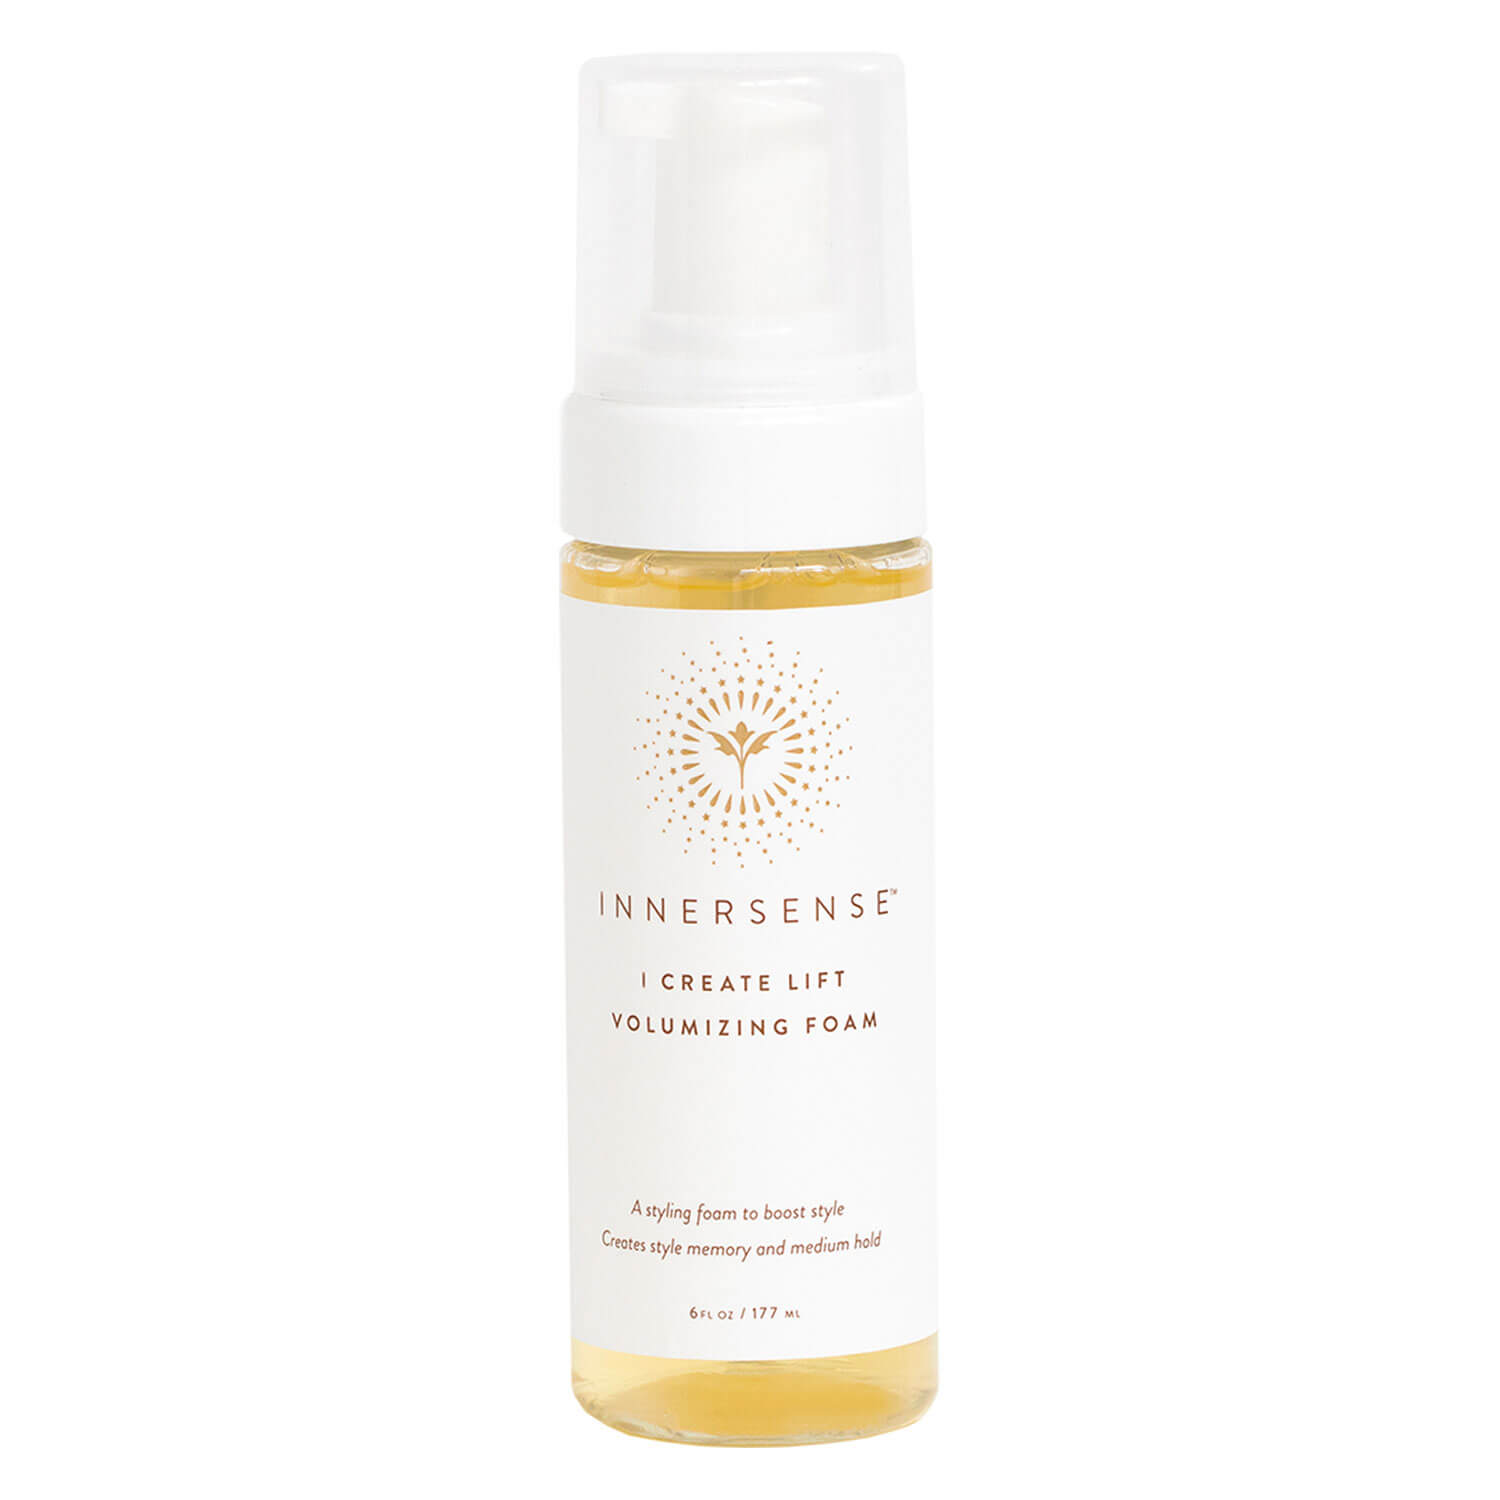 Innersense - I Create Lift Volumizing Foam